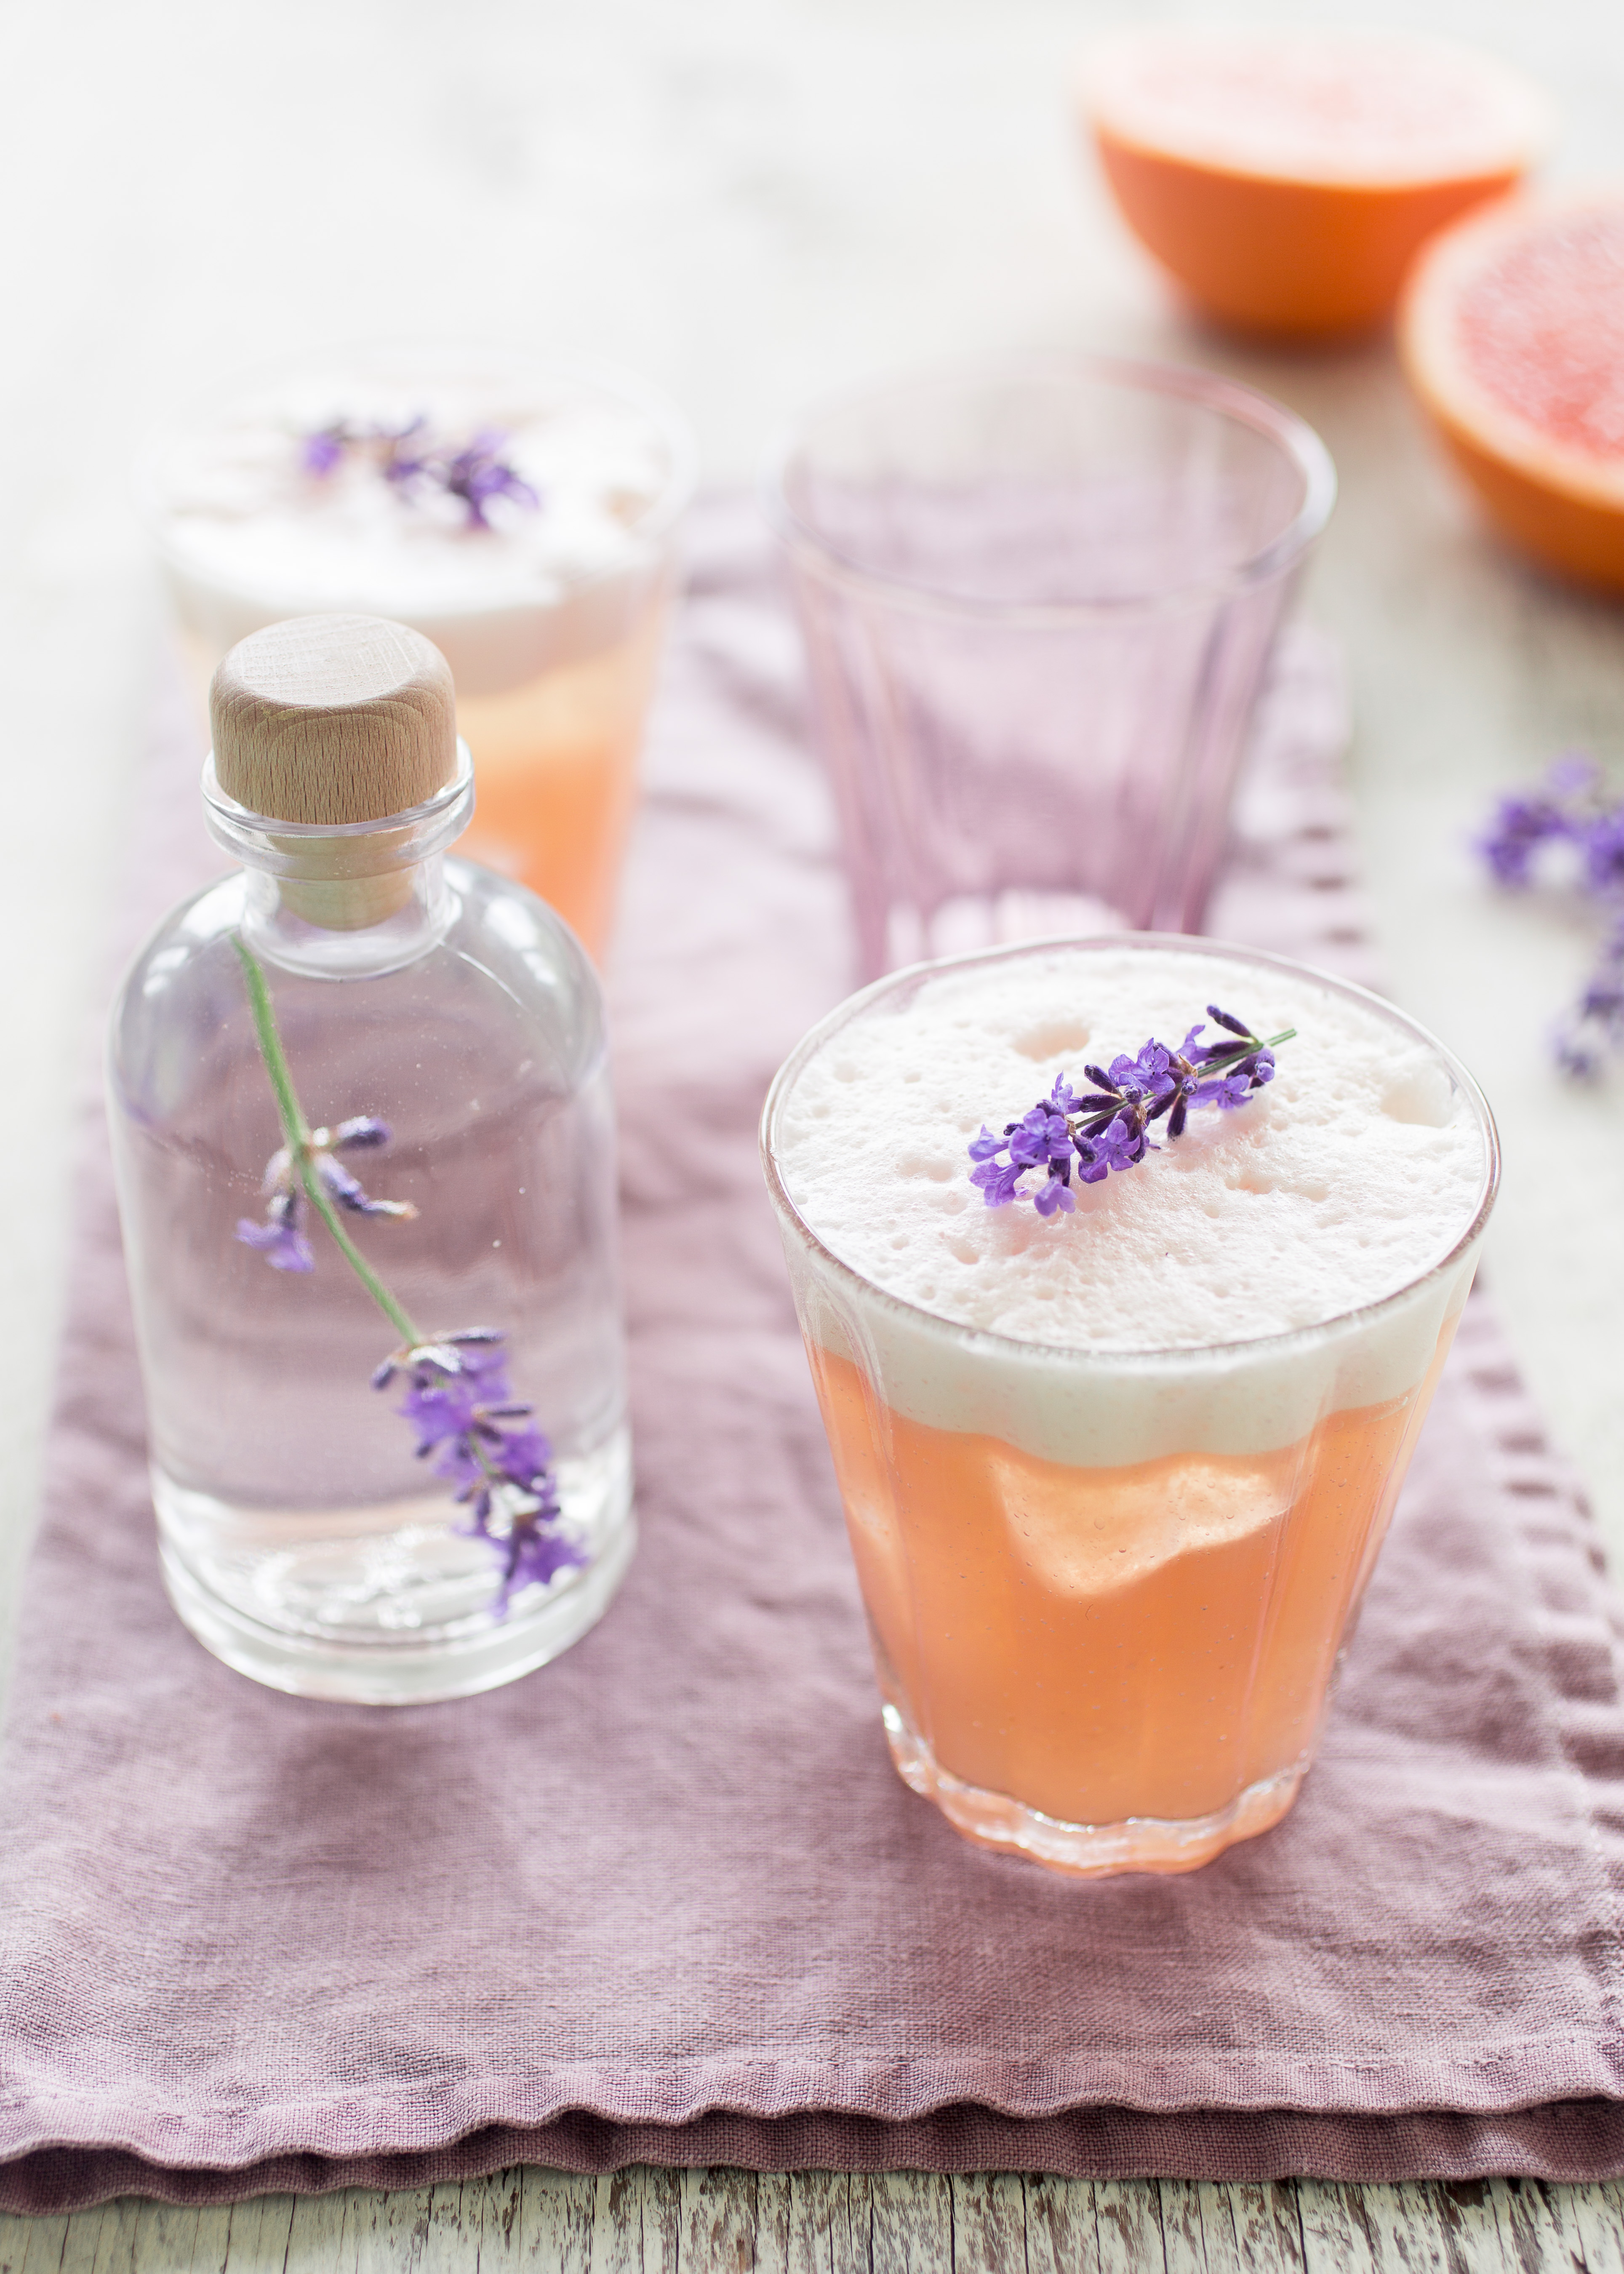 Lavender elderflower and grapefruit gin fizz edible seattle i knew immediately that lavenders flowery tones would pair well with an elderflower liqueur such as st germain and the botanical flavors of gin forumfinder Images